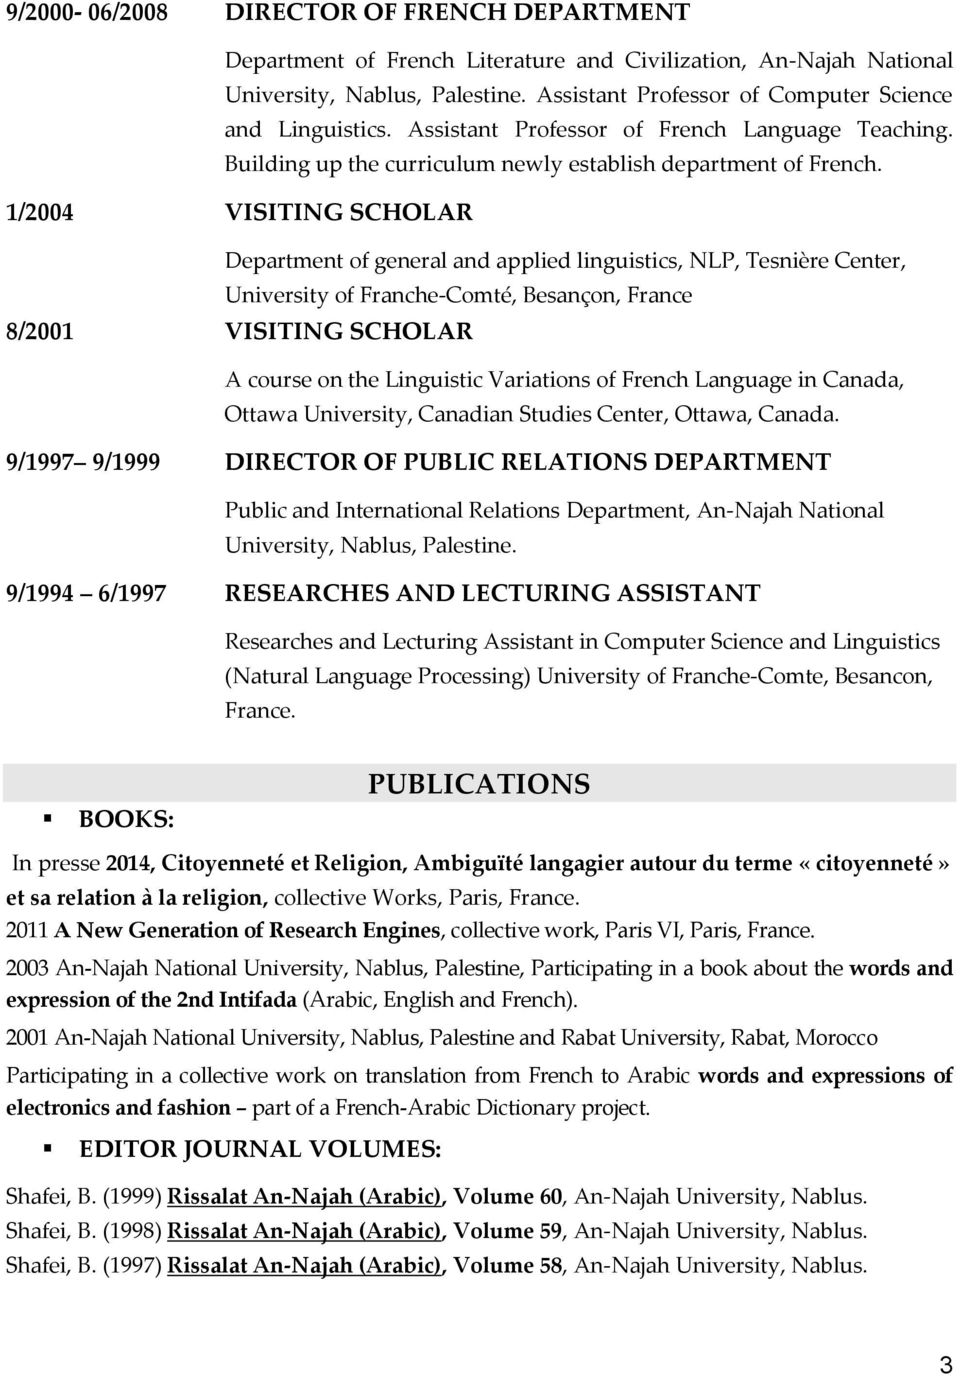 1/2004 VISITING SCHOLAR Department of general and applied linguistics, NLP, Tesnière Center, University of Franche-Comté, Besançon, France 8/2001 VISITING SCHOLAR A course on the Linguistic